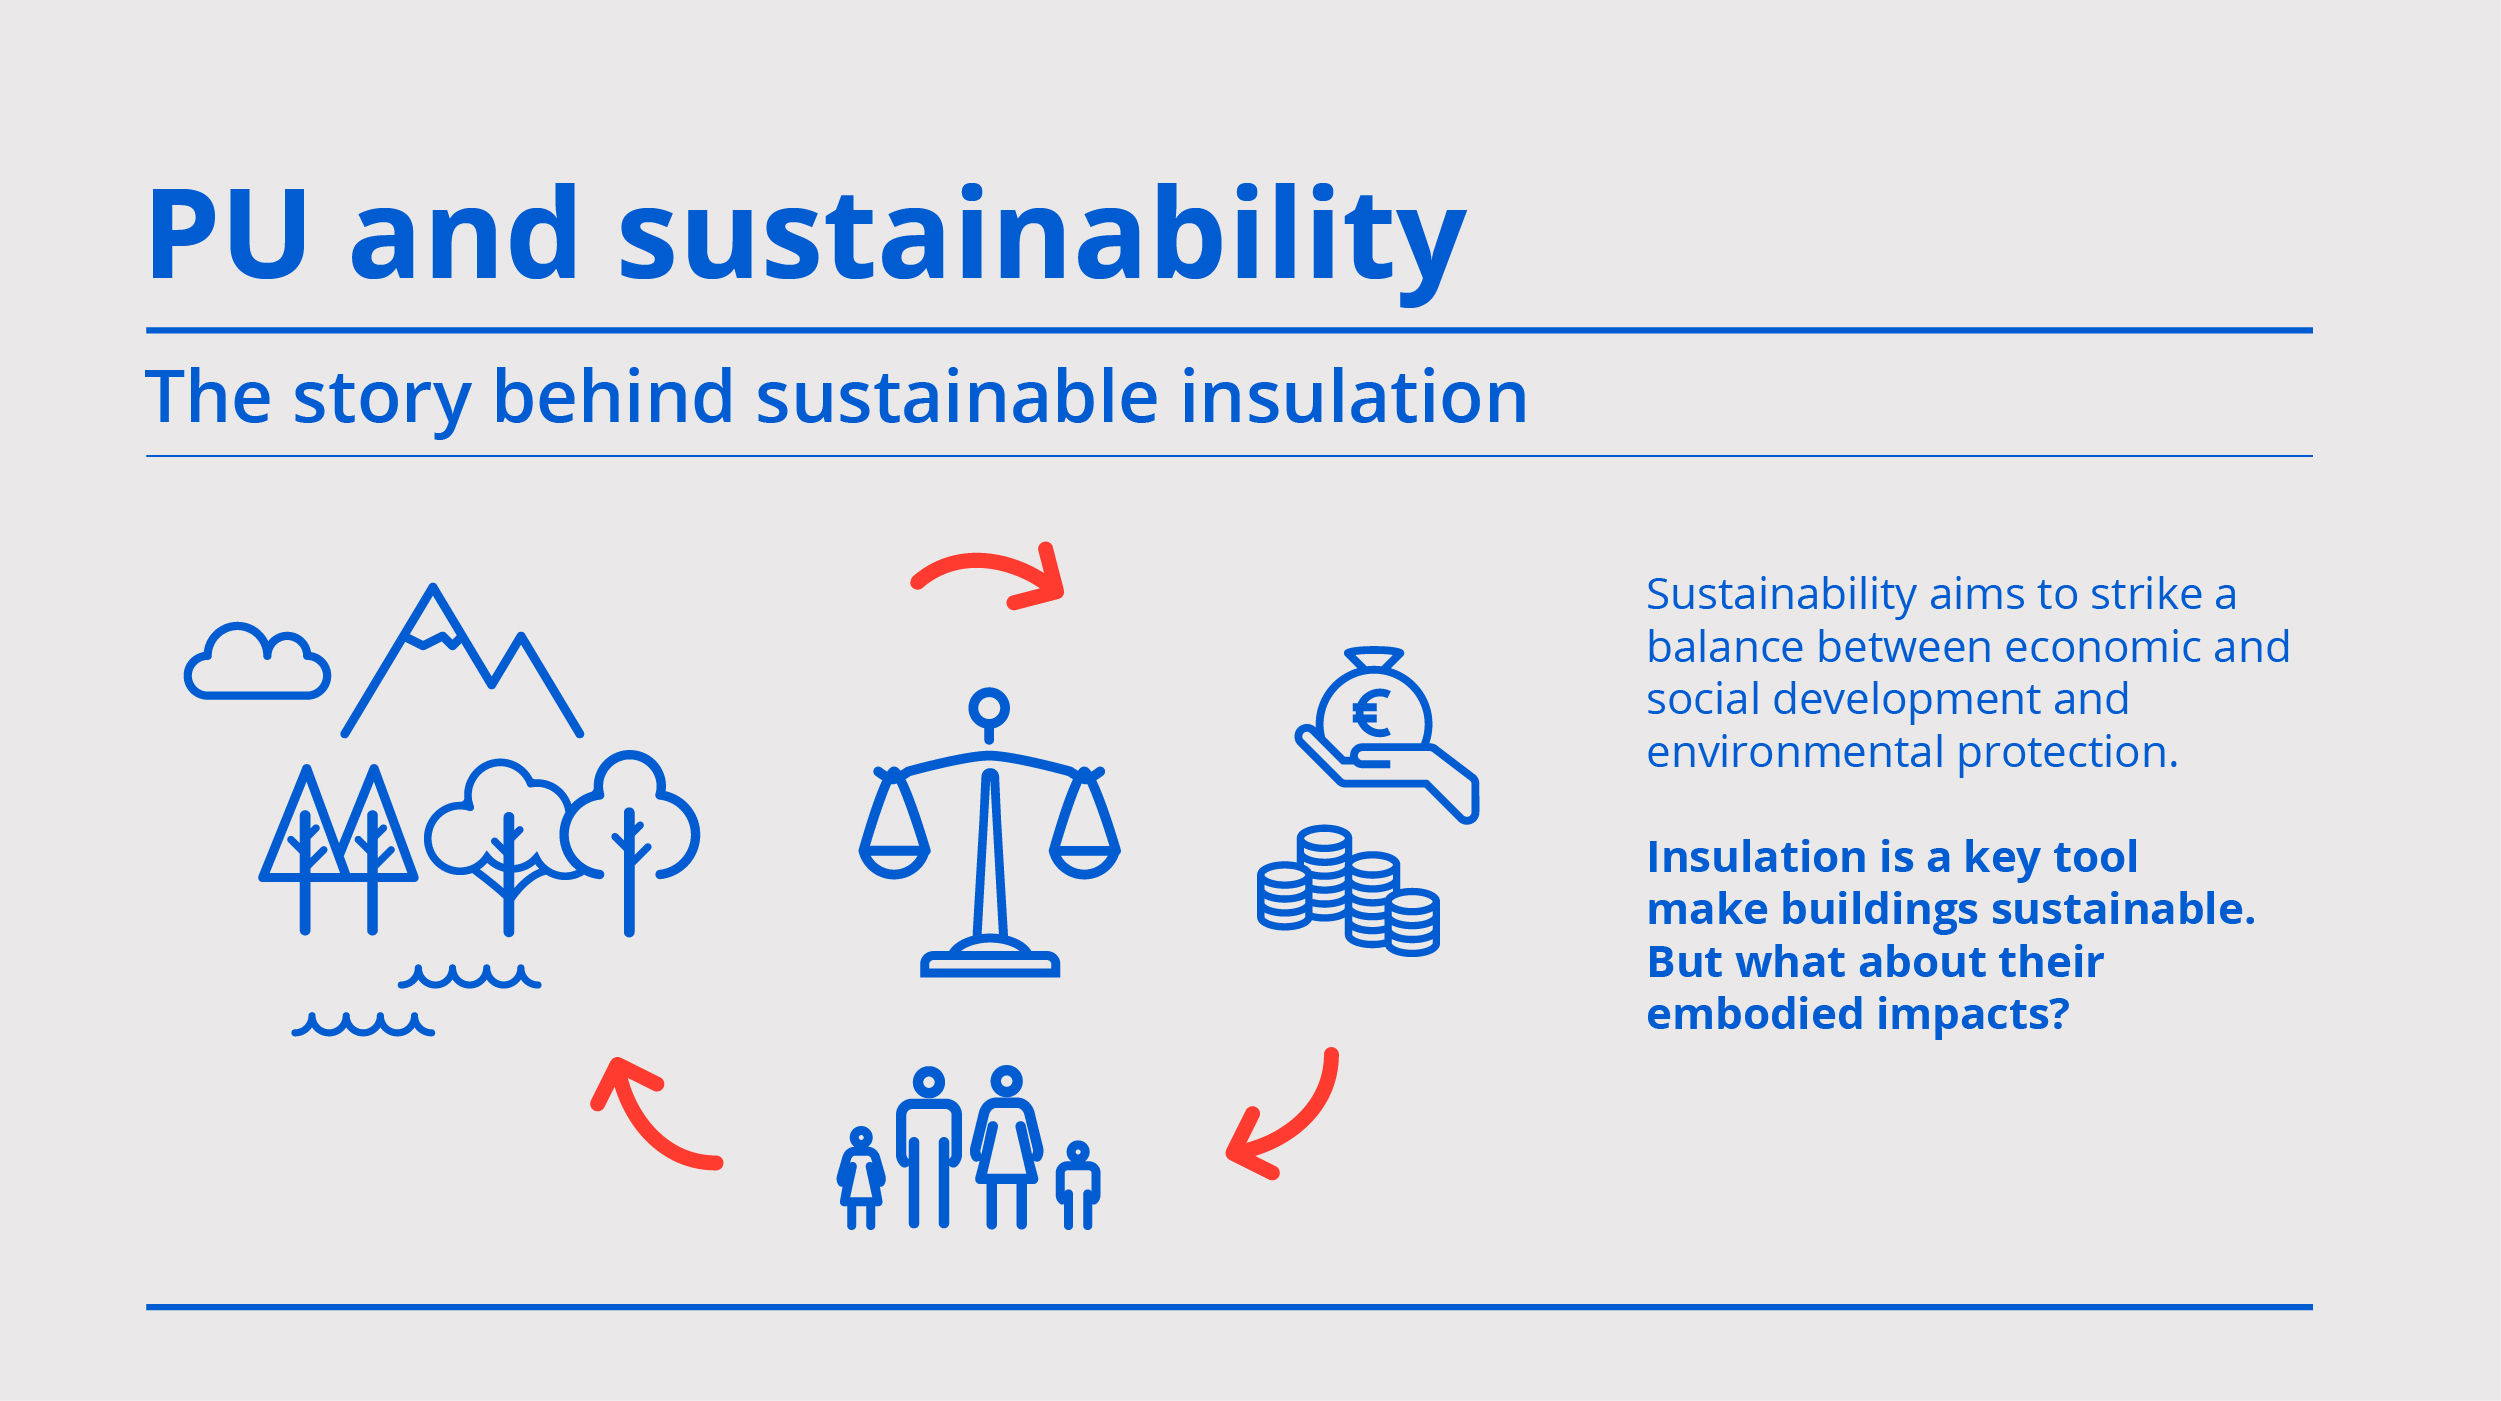 The story behind sustainable insulation